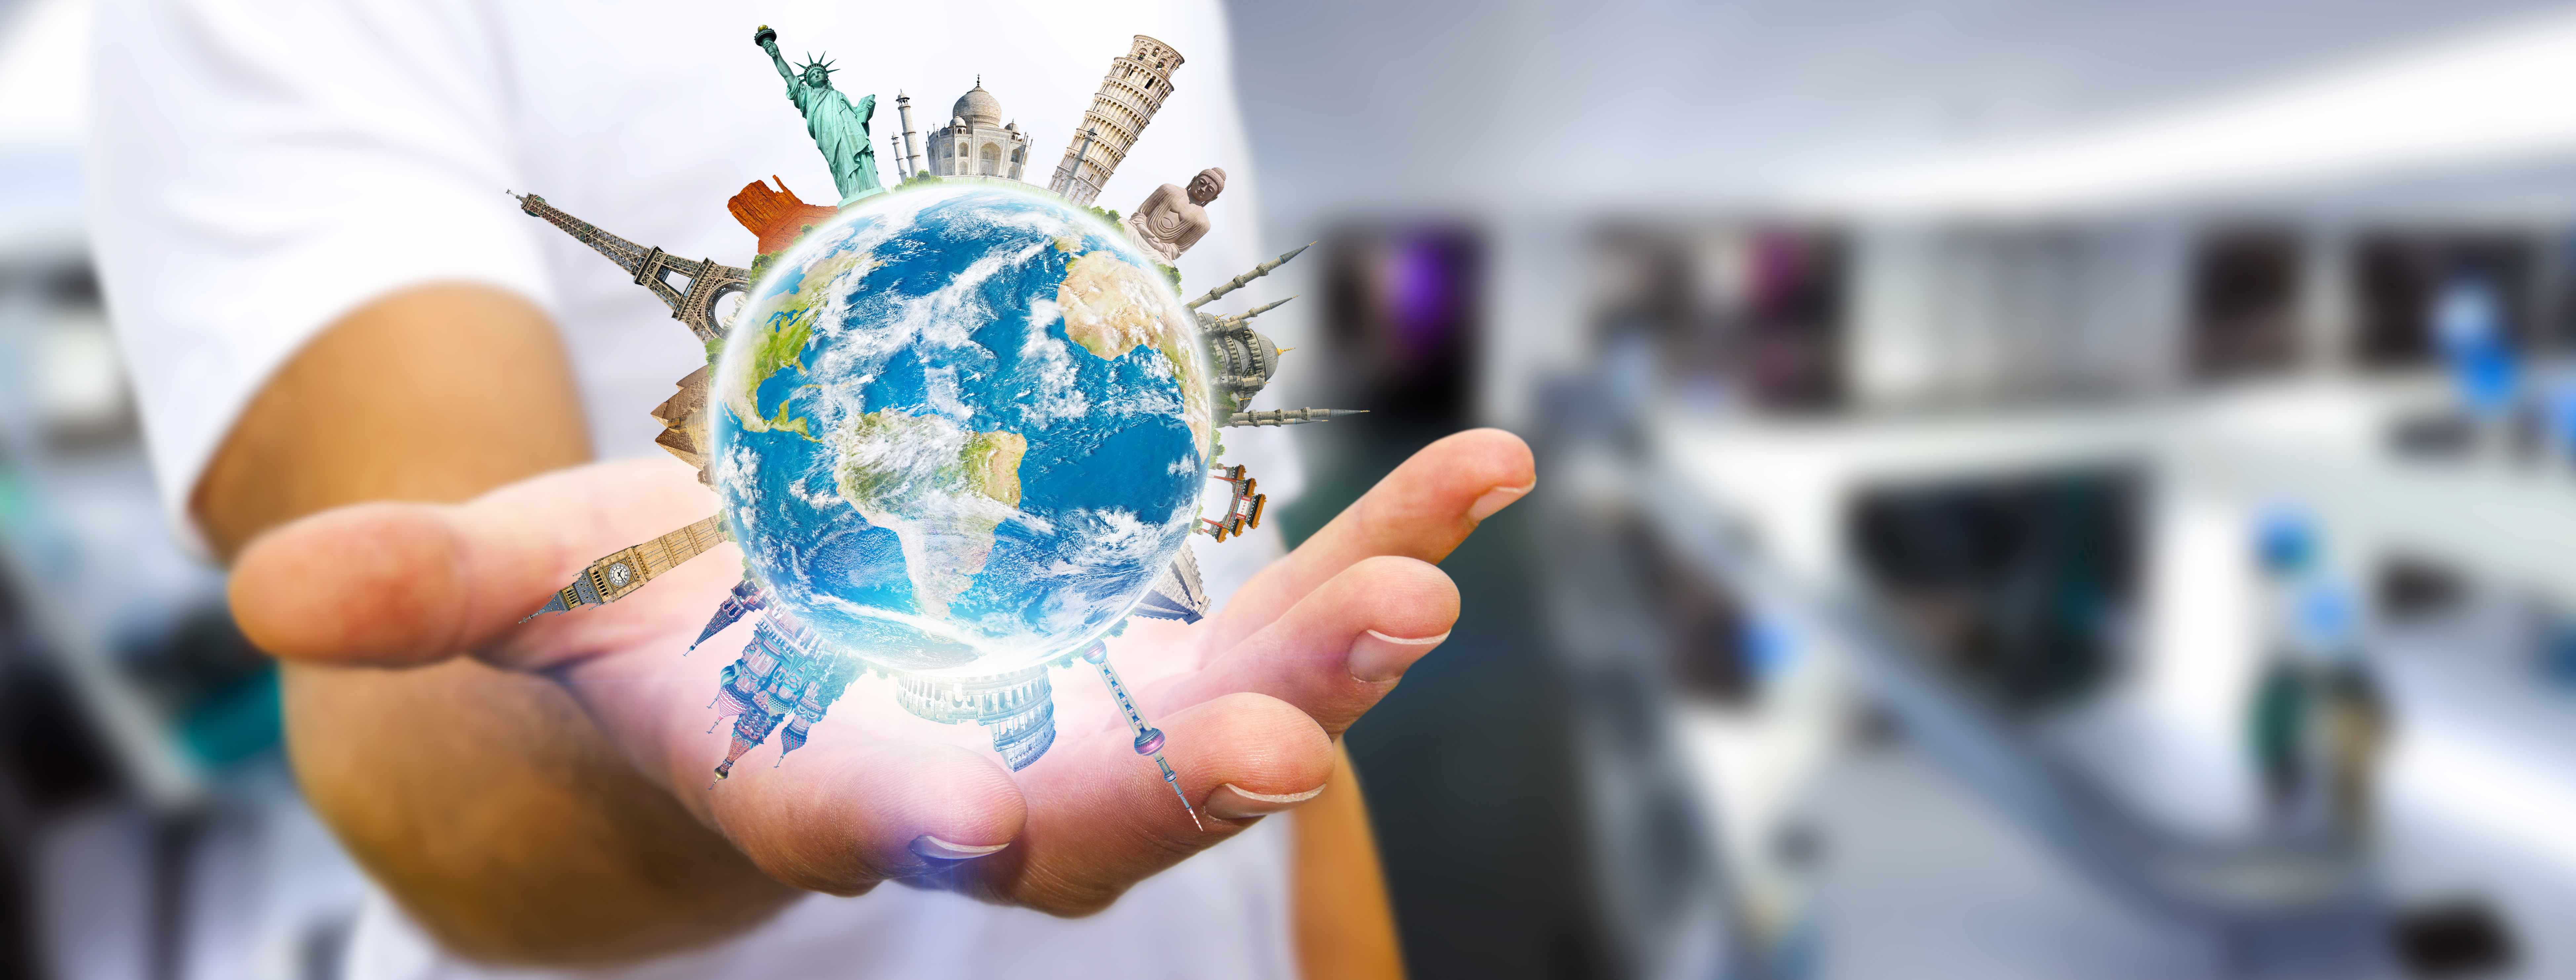 a person in a work office or lab balancing the world or globe in their hand